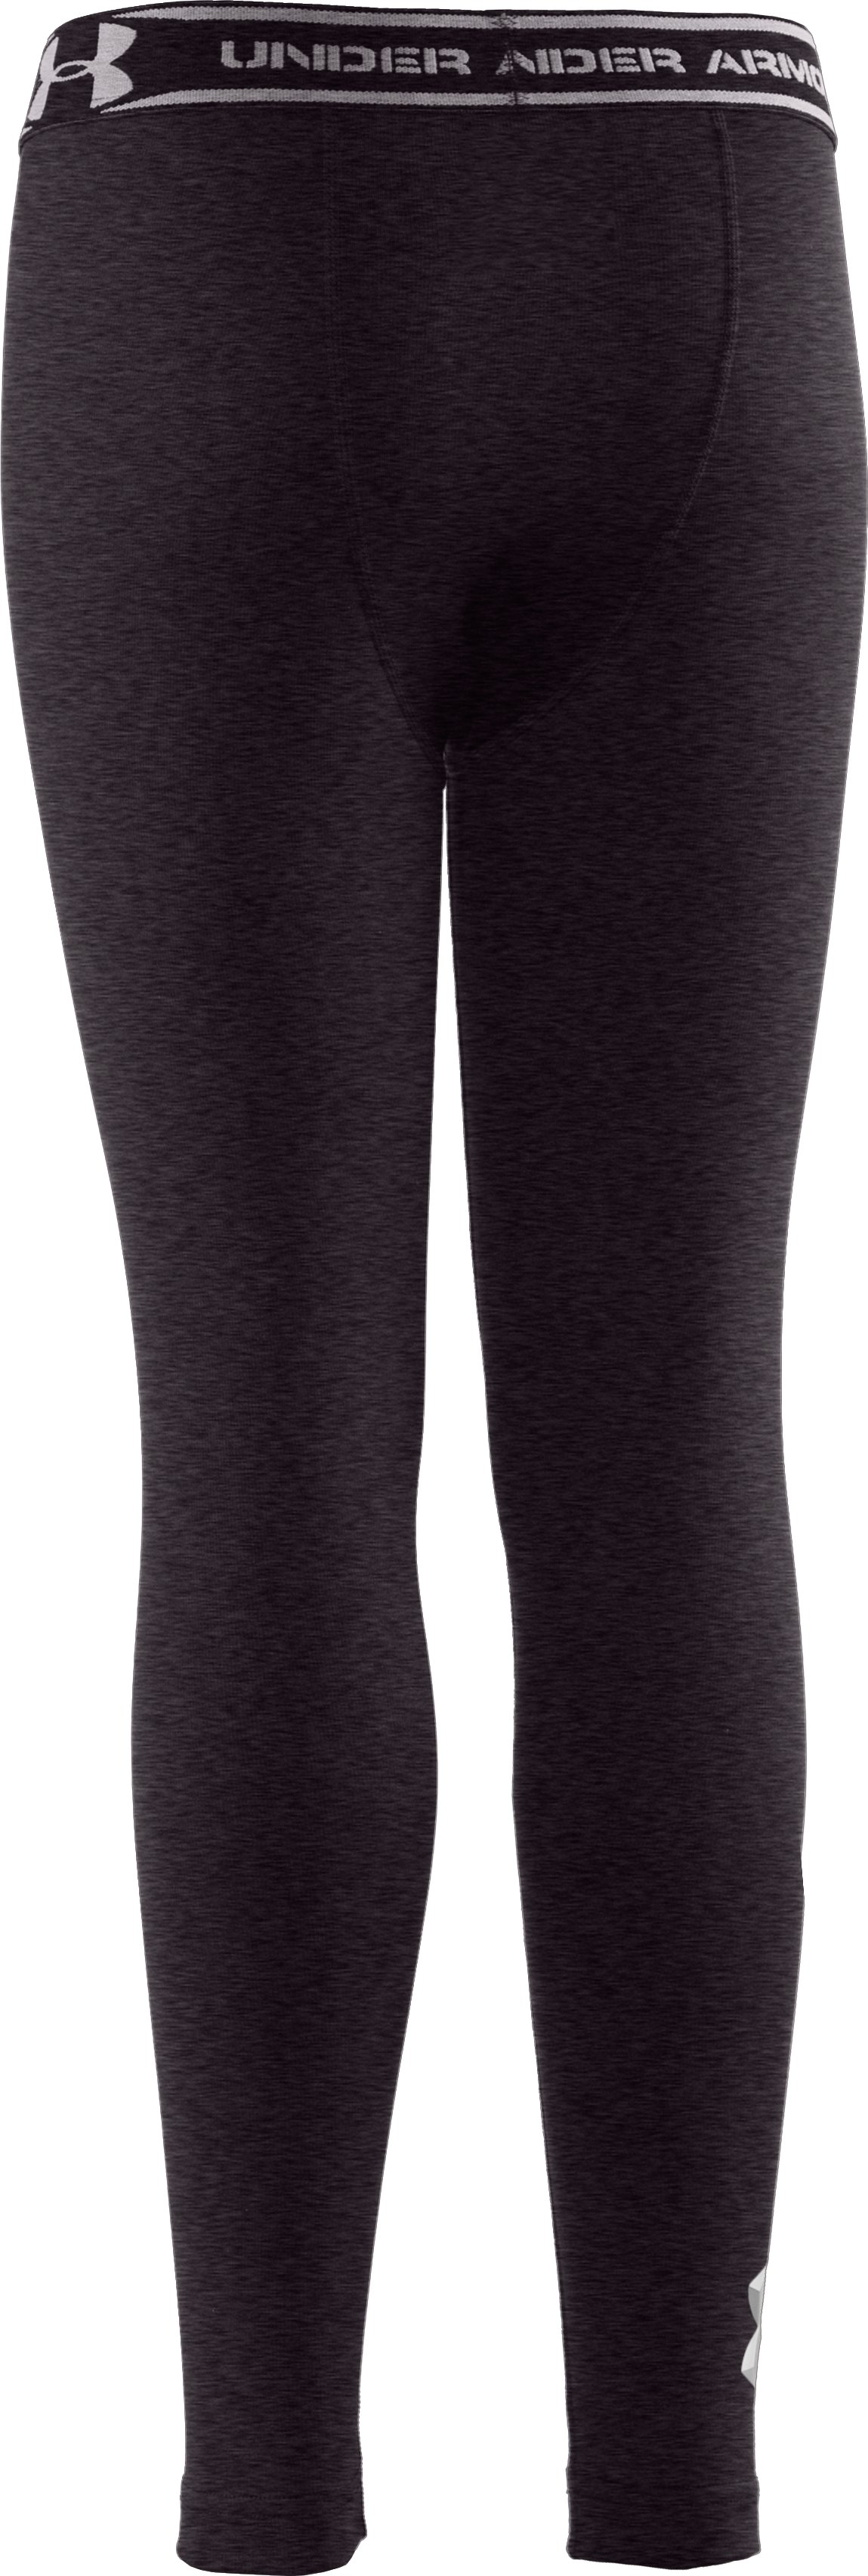 Boys' ColdGear® Evo Fitted Baselayer Tights, Carbon Heather, undefined